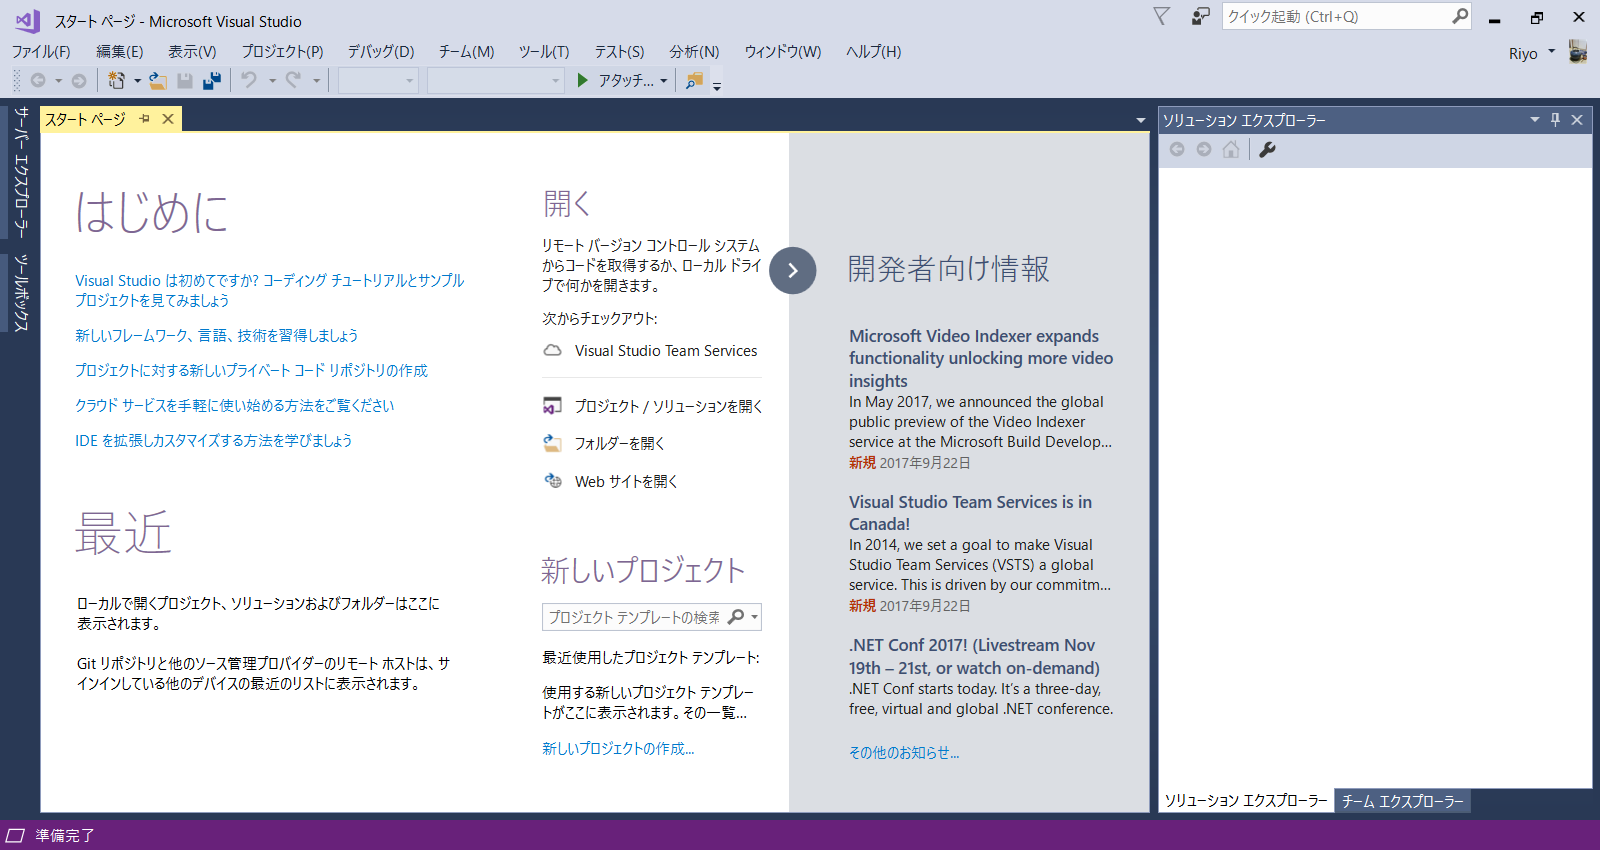 VisualStudio 2017 環境